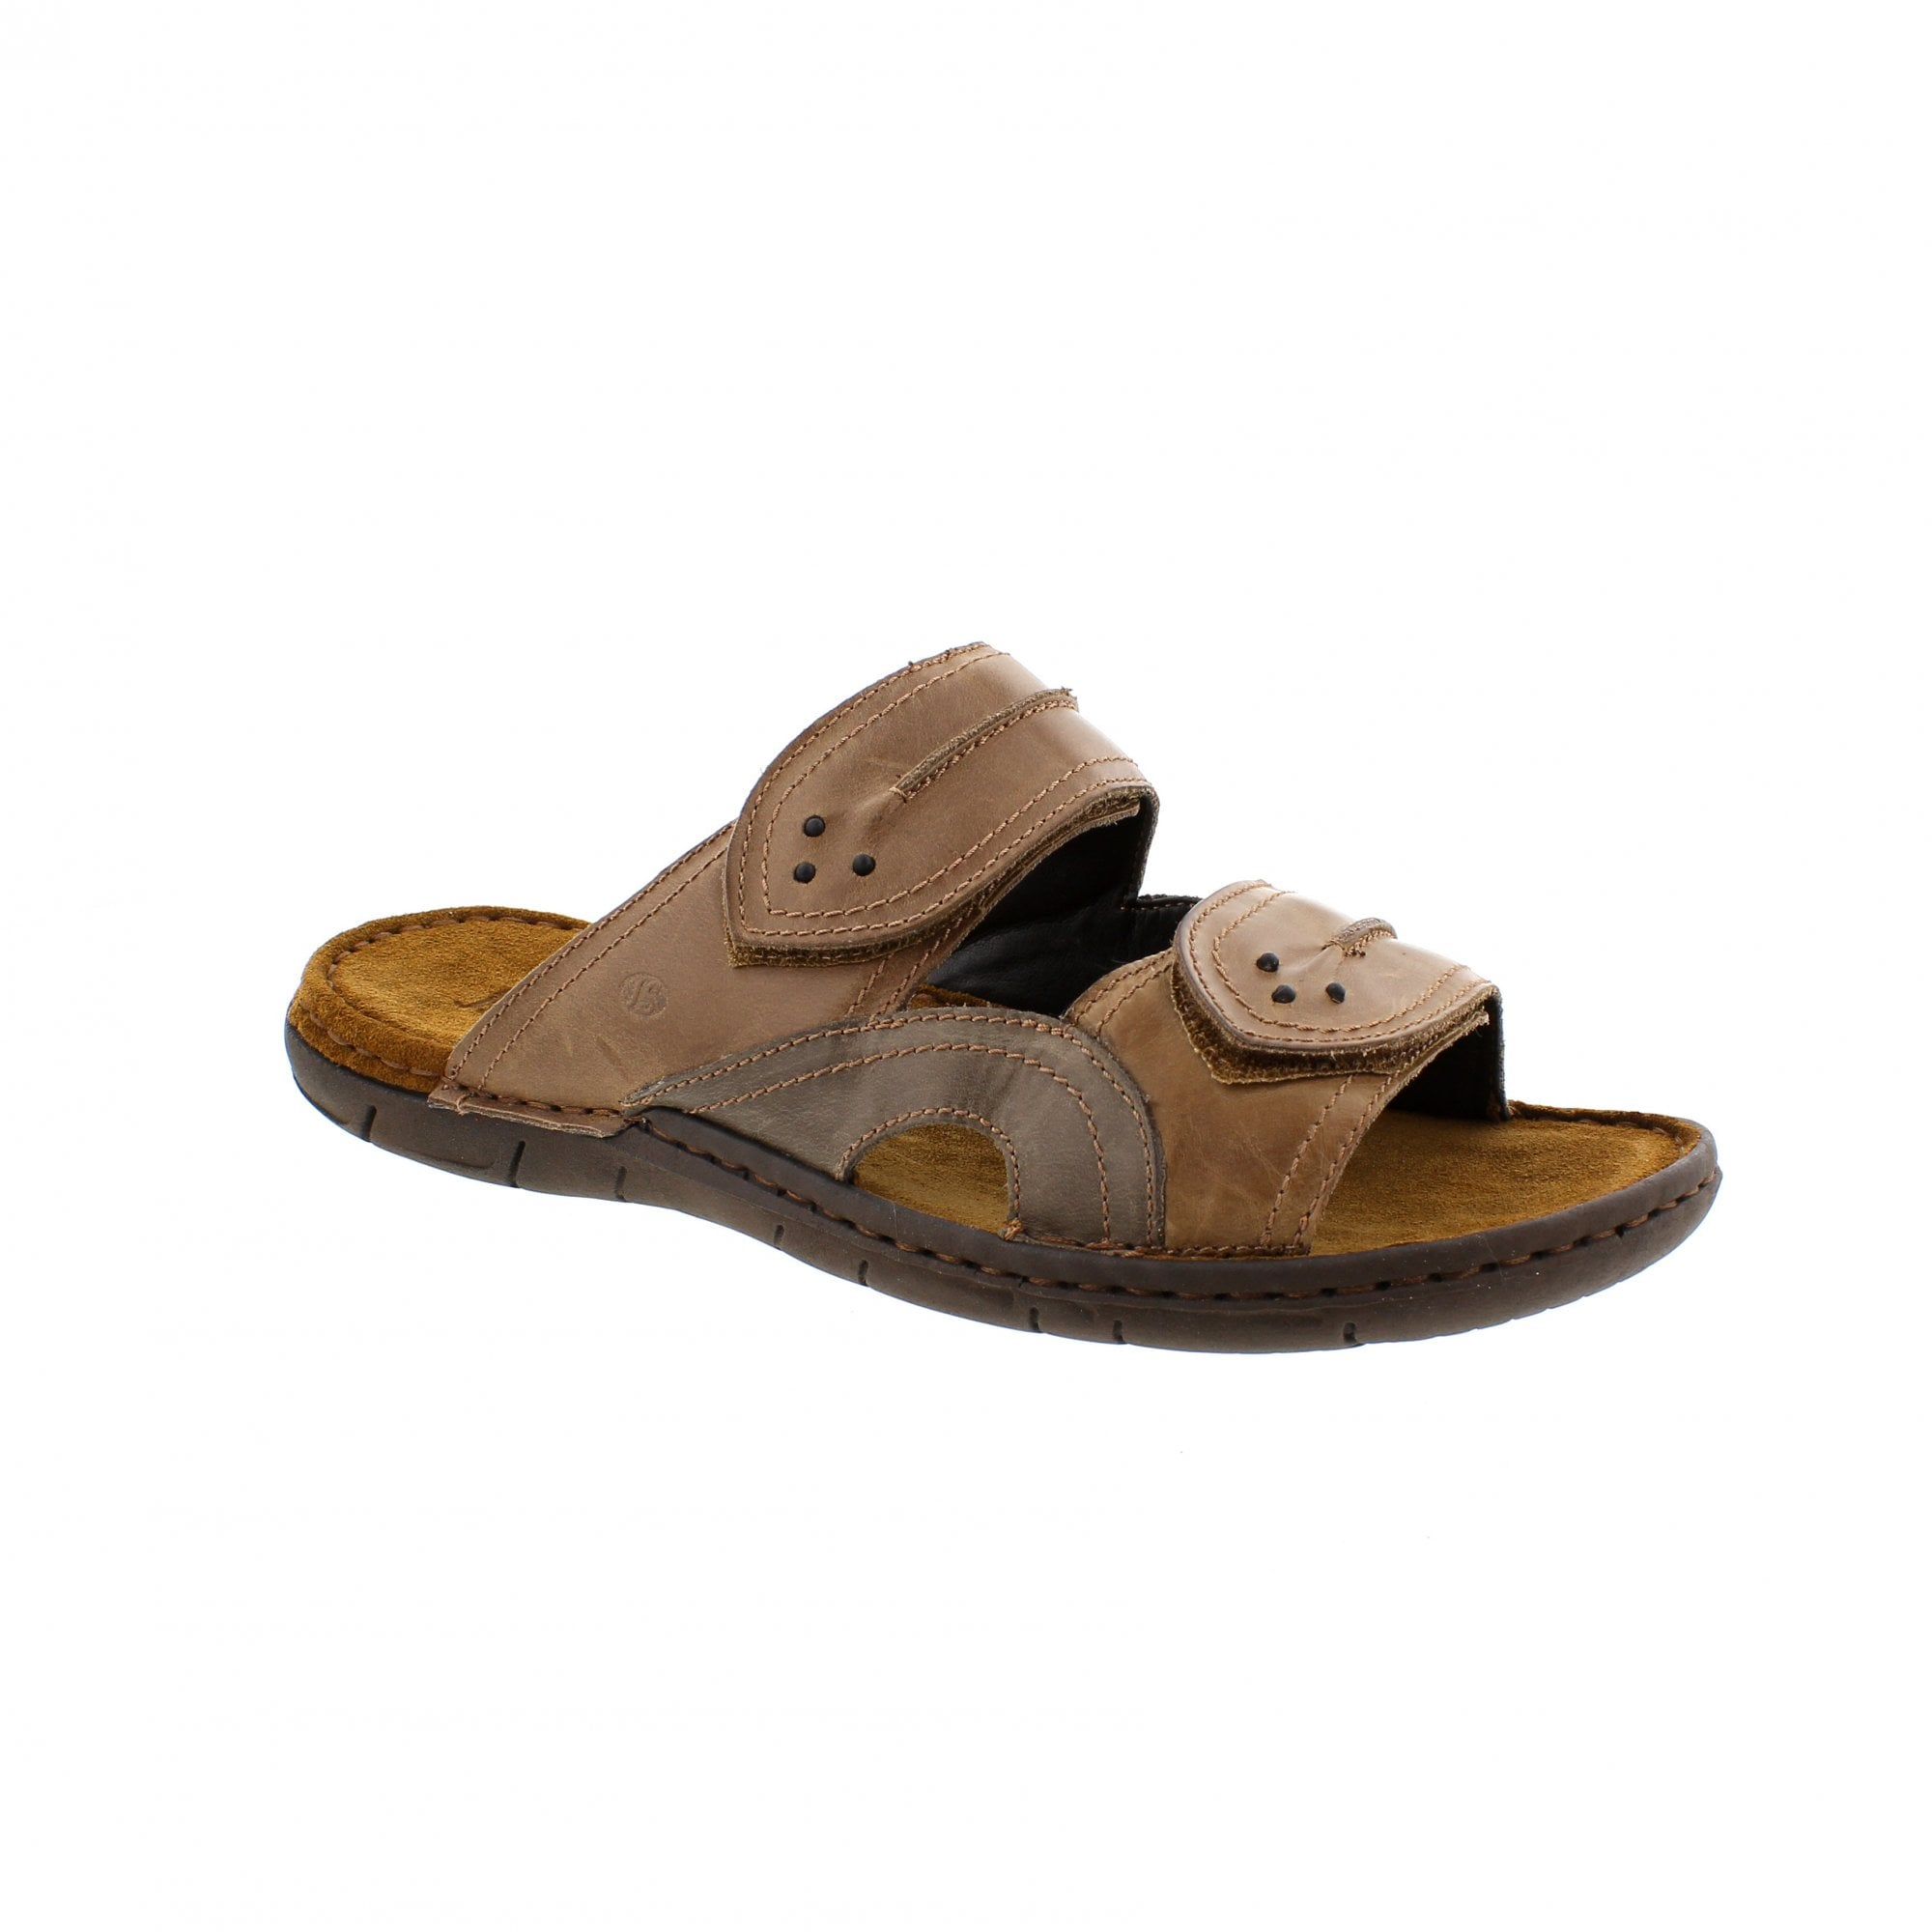 093d5752e Josef Seibel Paul 07 43207-85922 Mens Mule Sandals